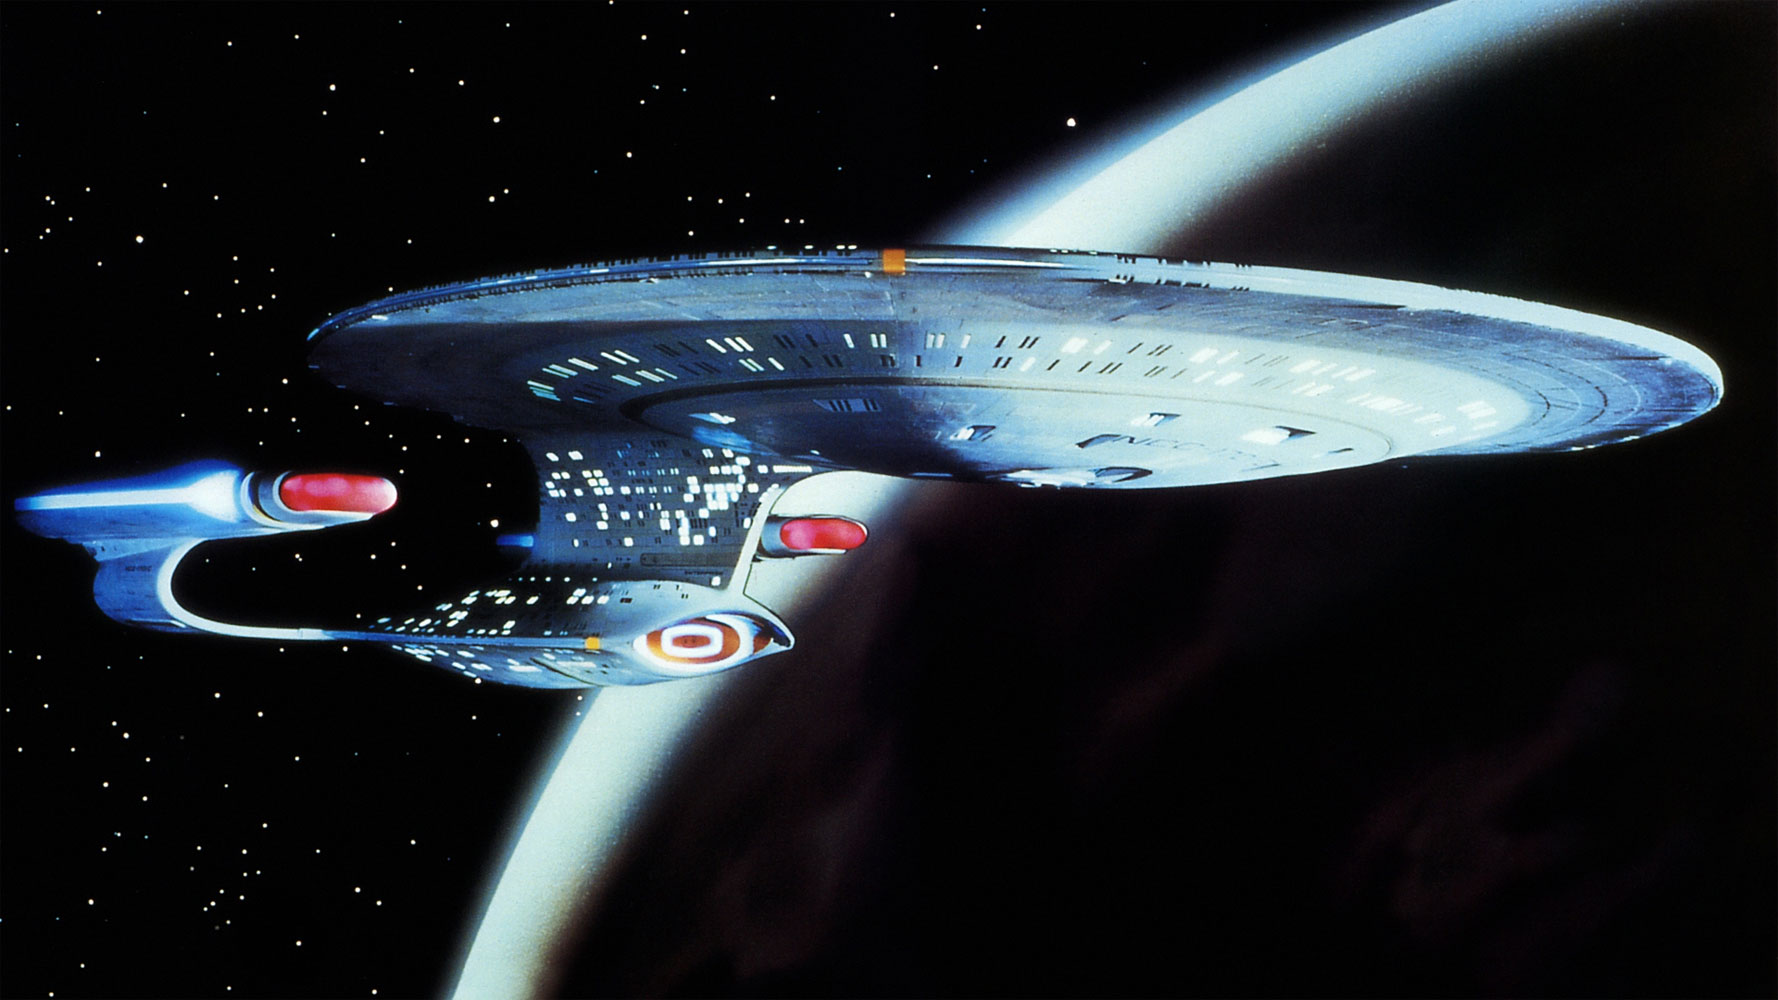 Star Trek: The Next Generation and two podcasts dedicated to it: The Greatest Generation and Star Trek: The Next Conversation